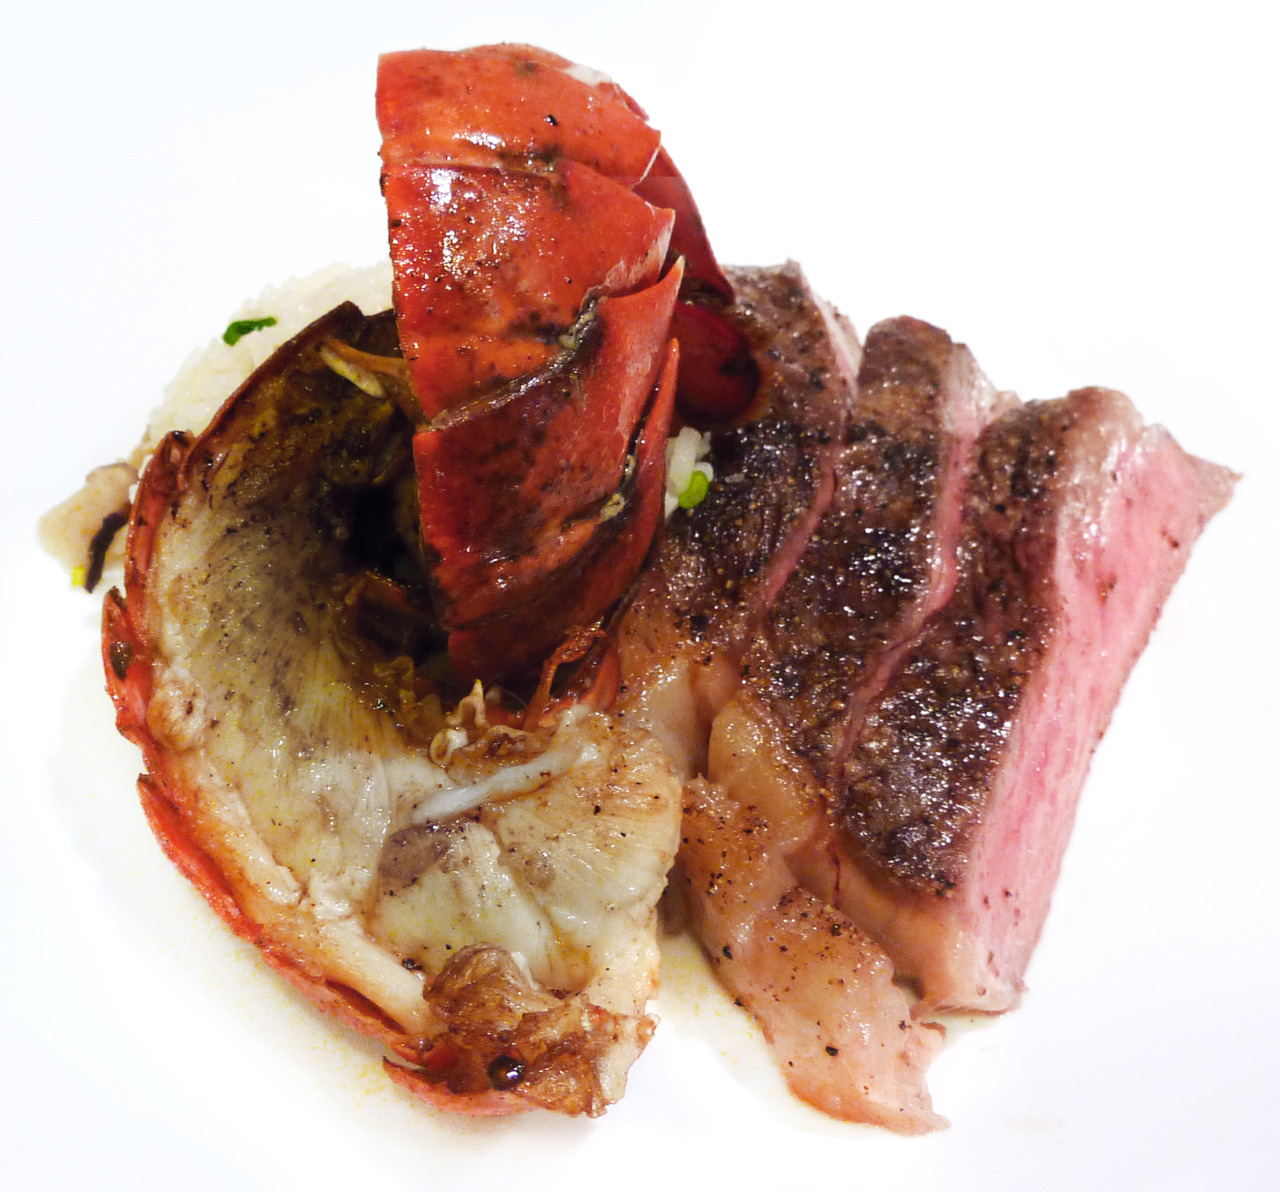 sous-vide steak & lobsterwith truffled matsutake riceA random combination of stuff I had in the fridge-rator.